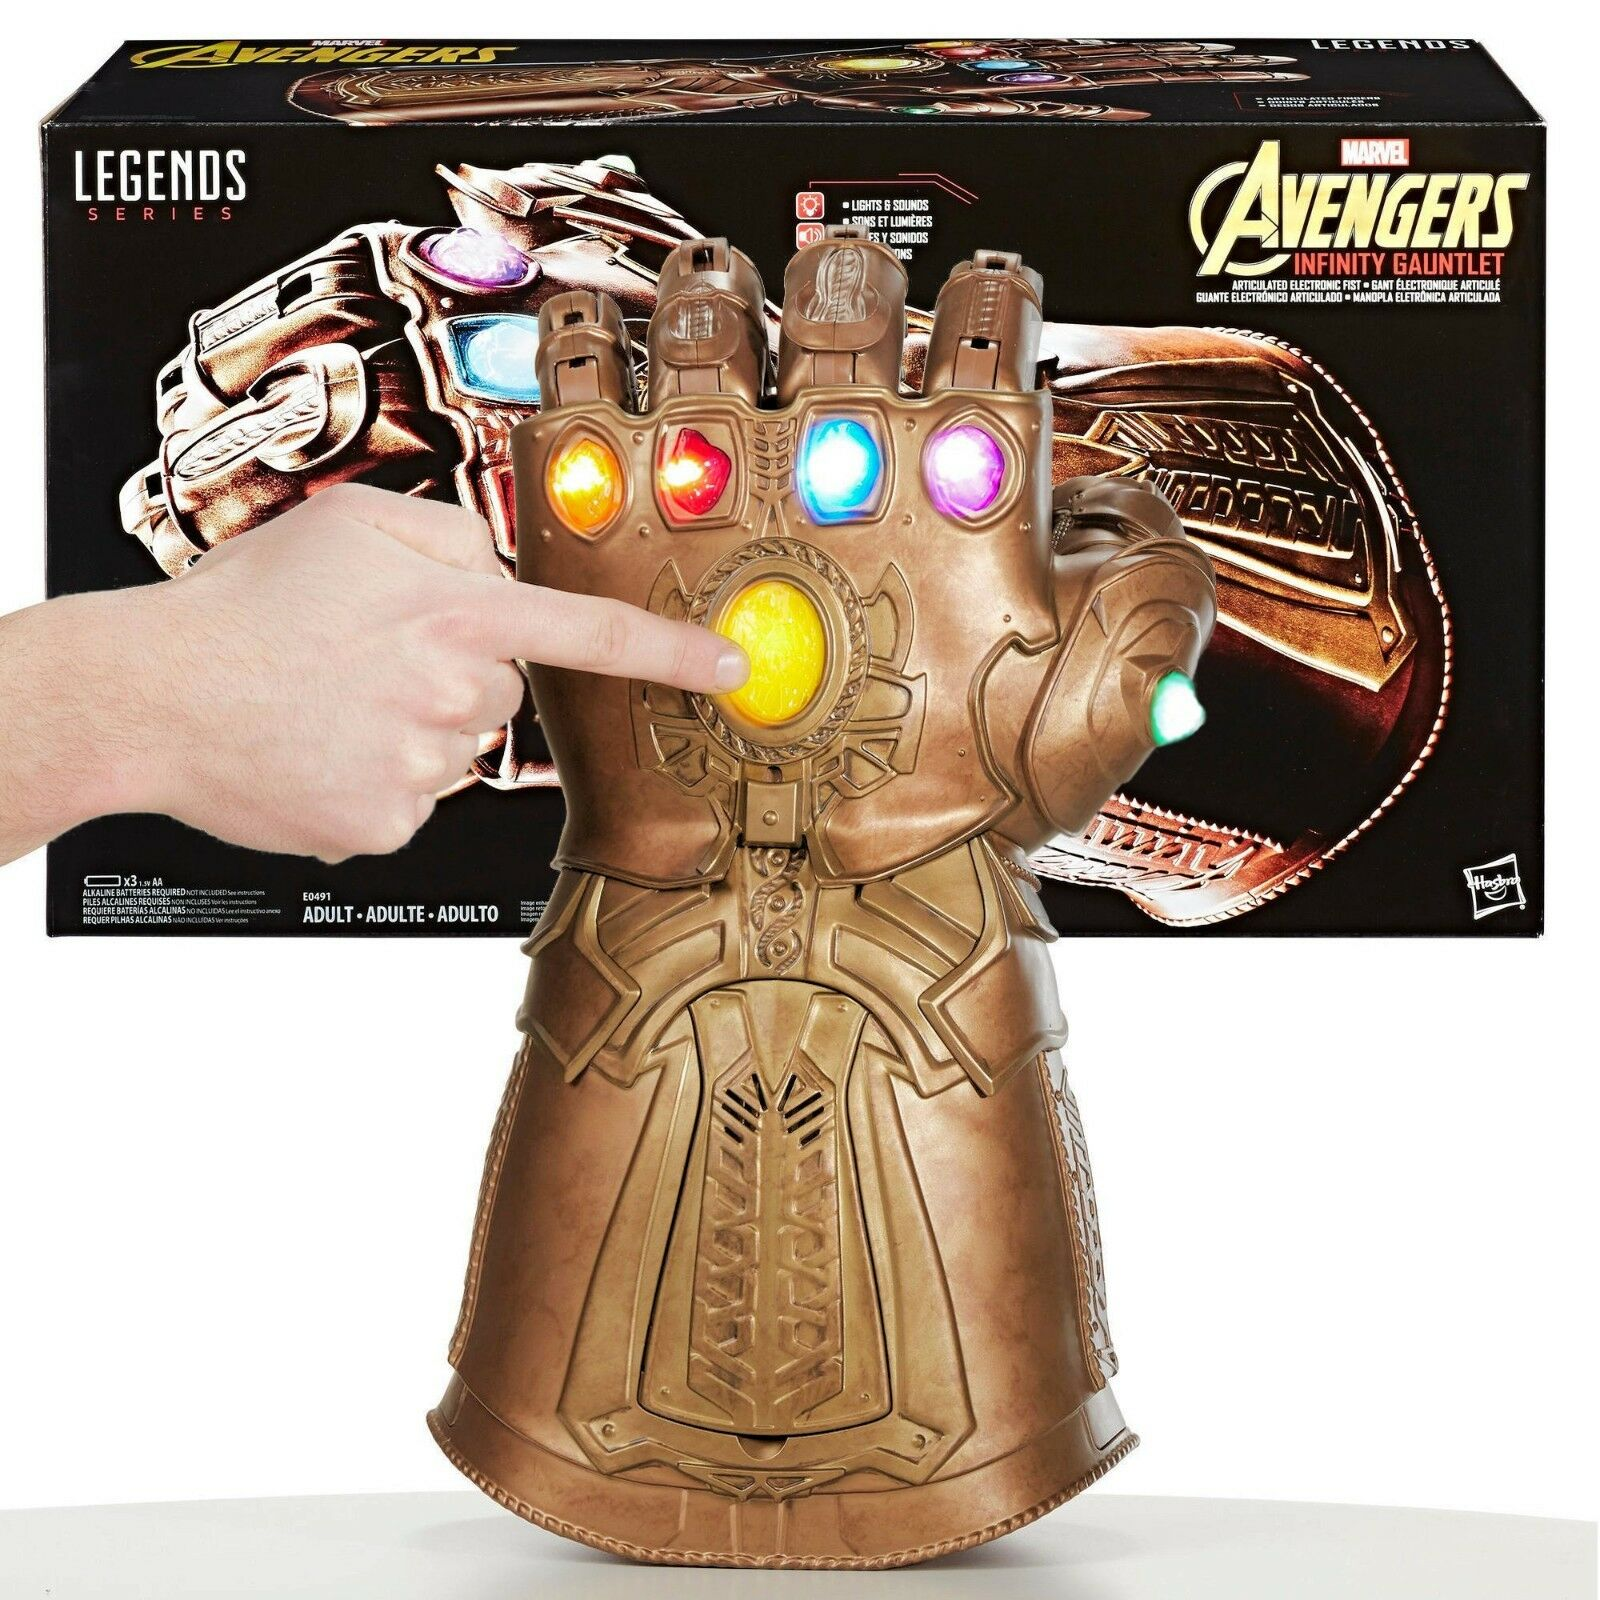 Thanos Infinity Gauntlet articulé électronique poing Marvel legends avengers NEW IN BOX